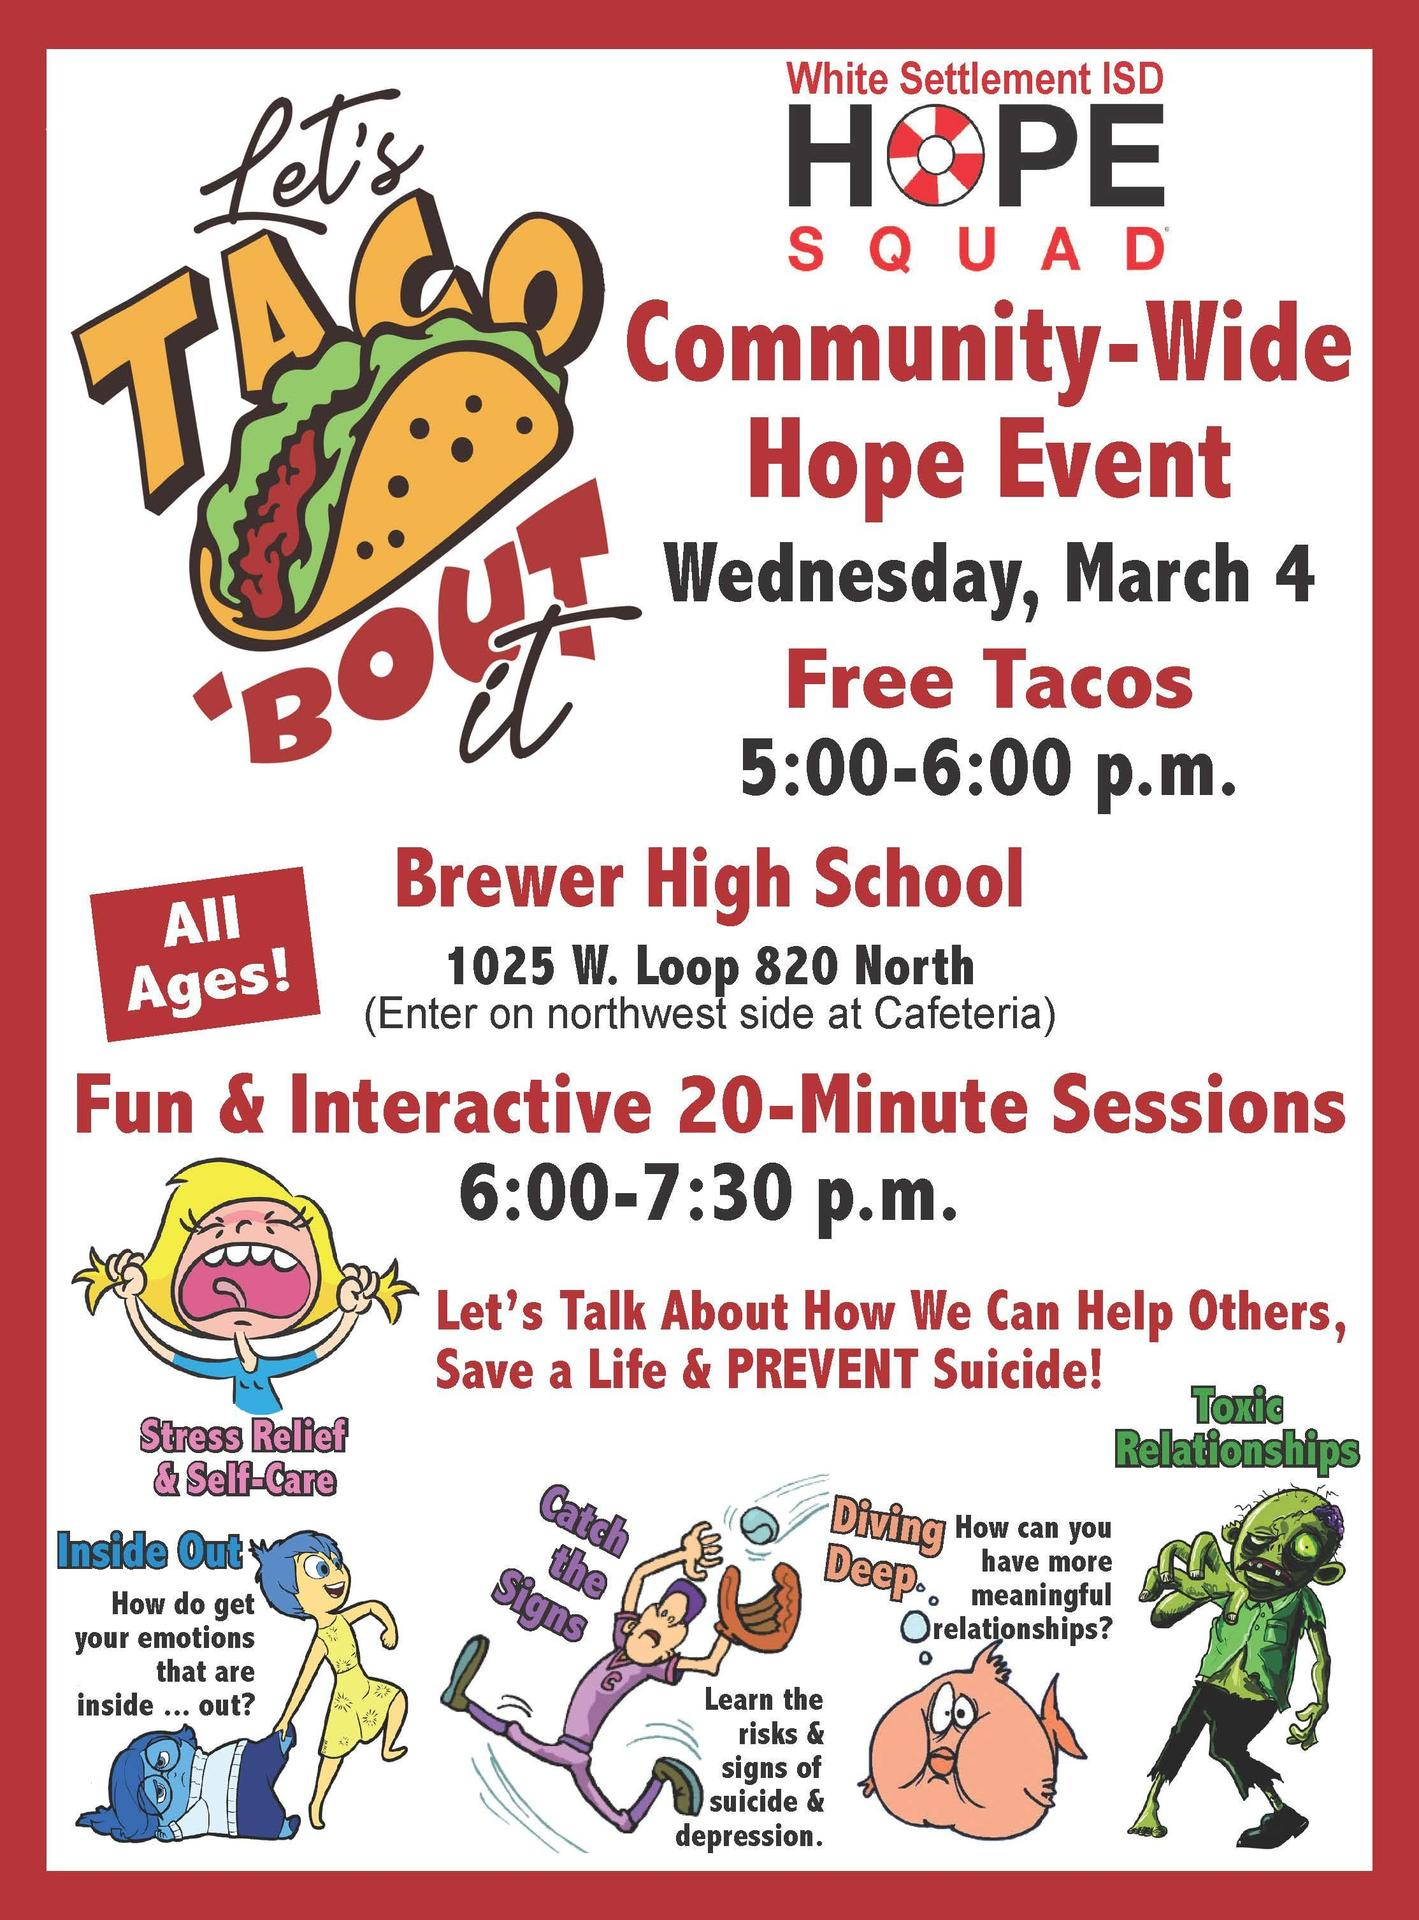 Let's Taco 'Bout It Night Wednesday, March 4